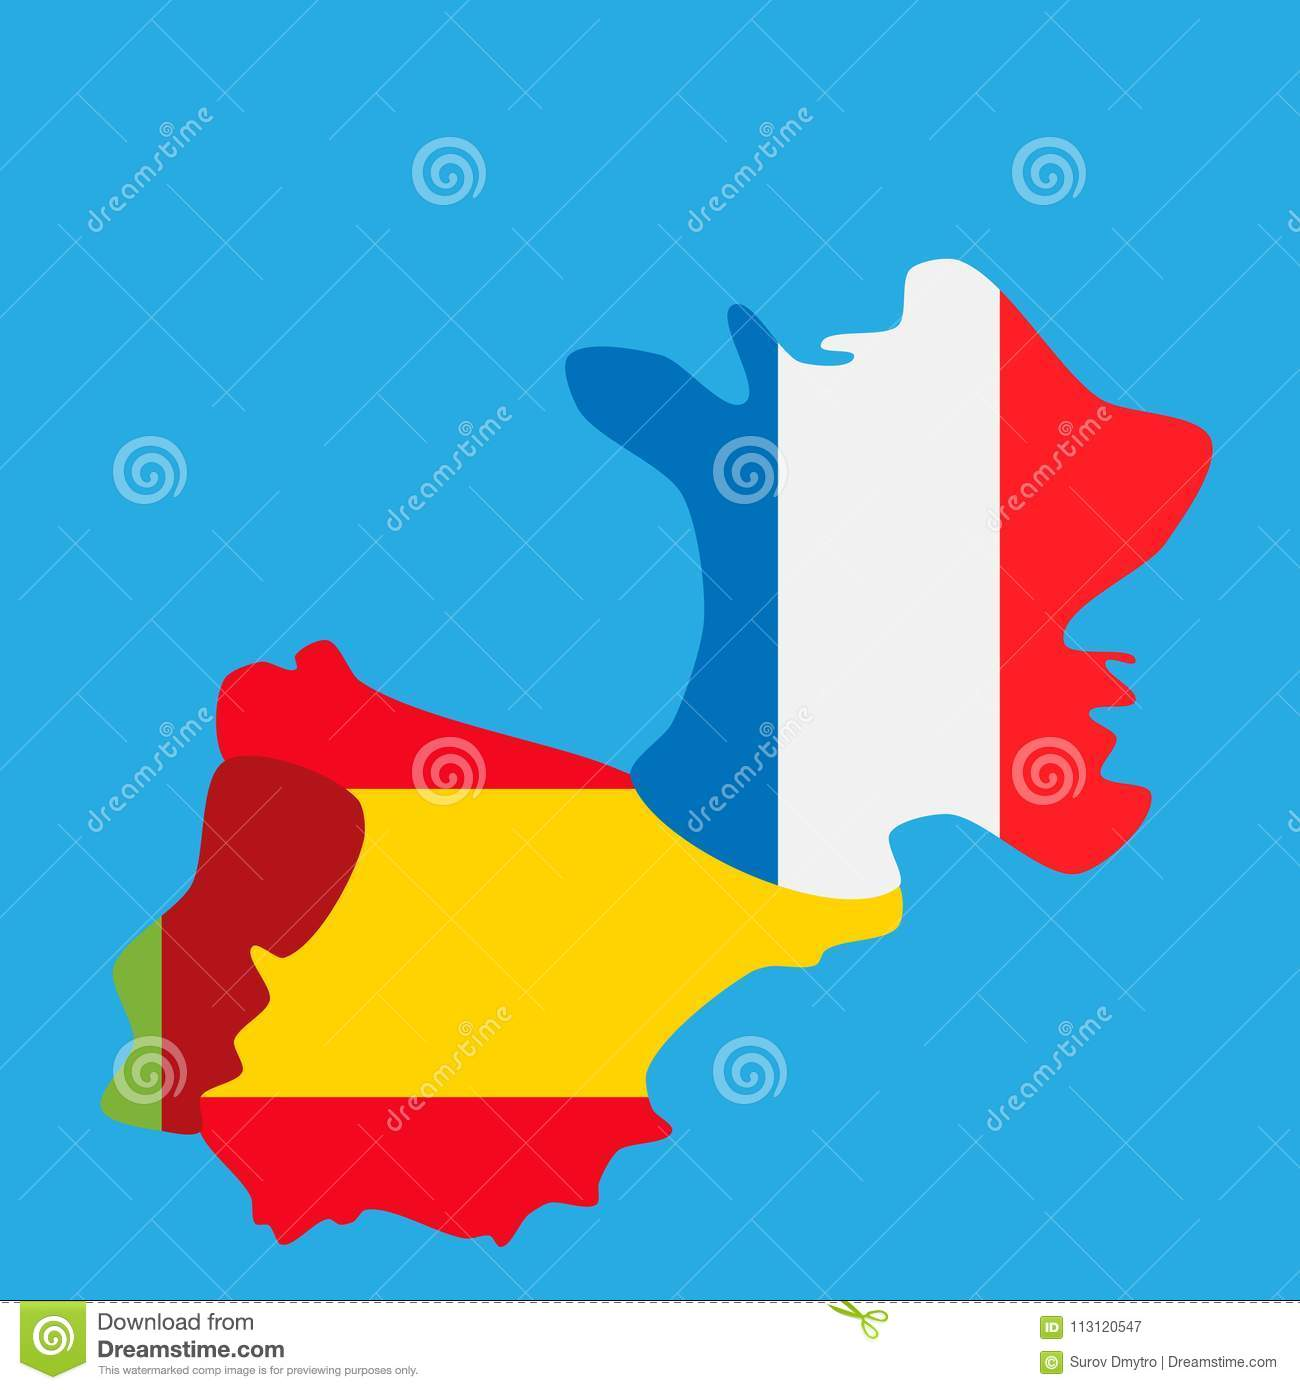 Map Of Spain Portugal And France.Map Of Portugal Spain And France With National Flags Stock